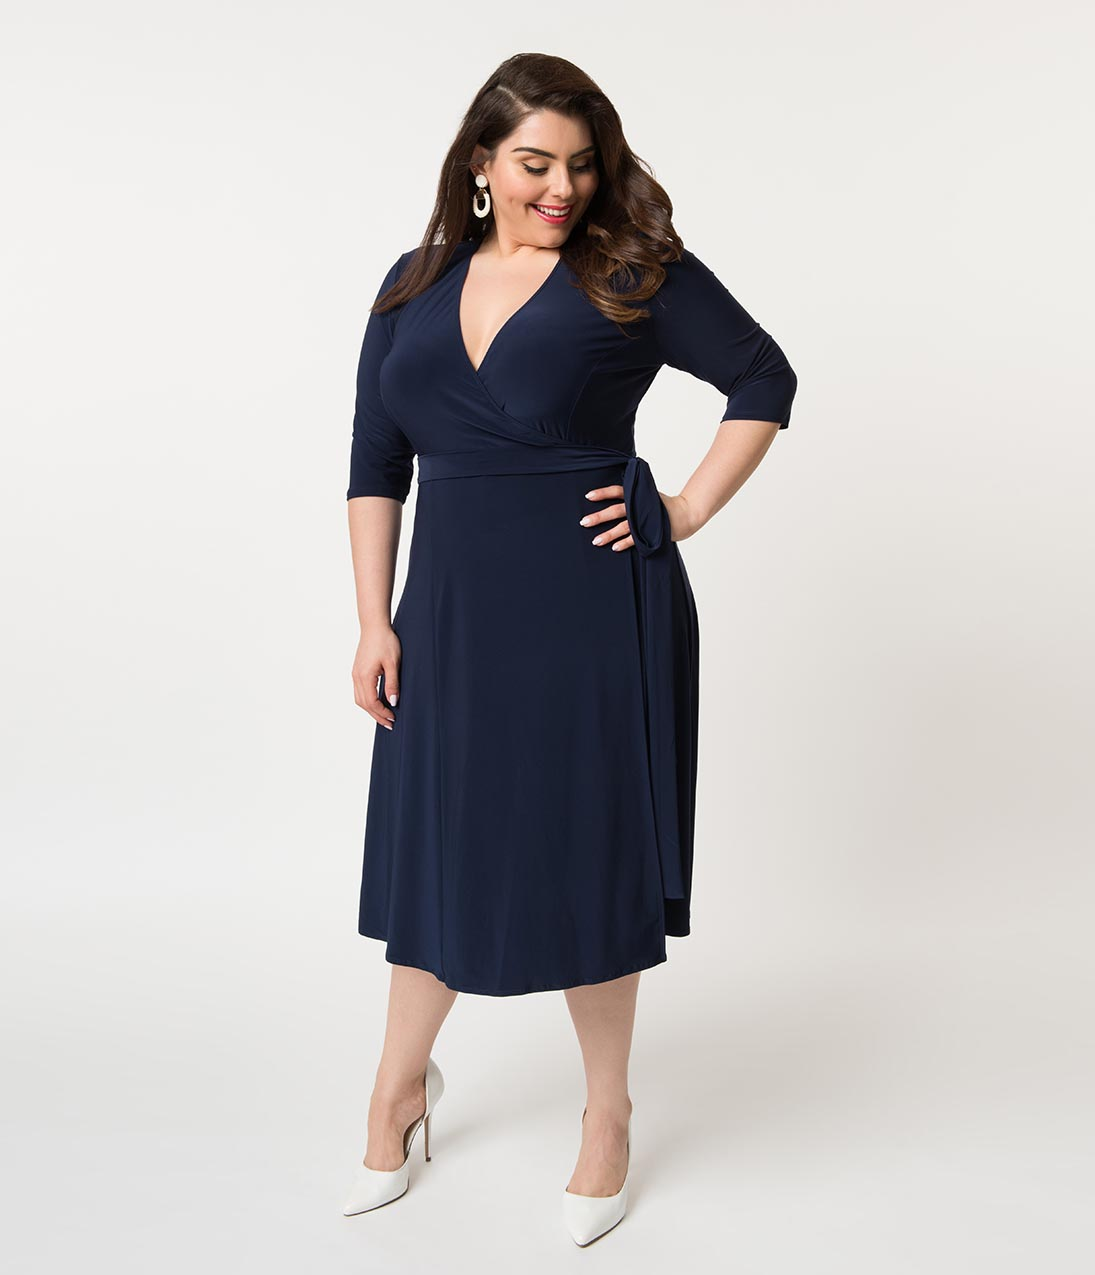 Plus Size Navy Outfit